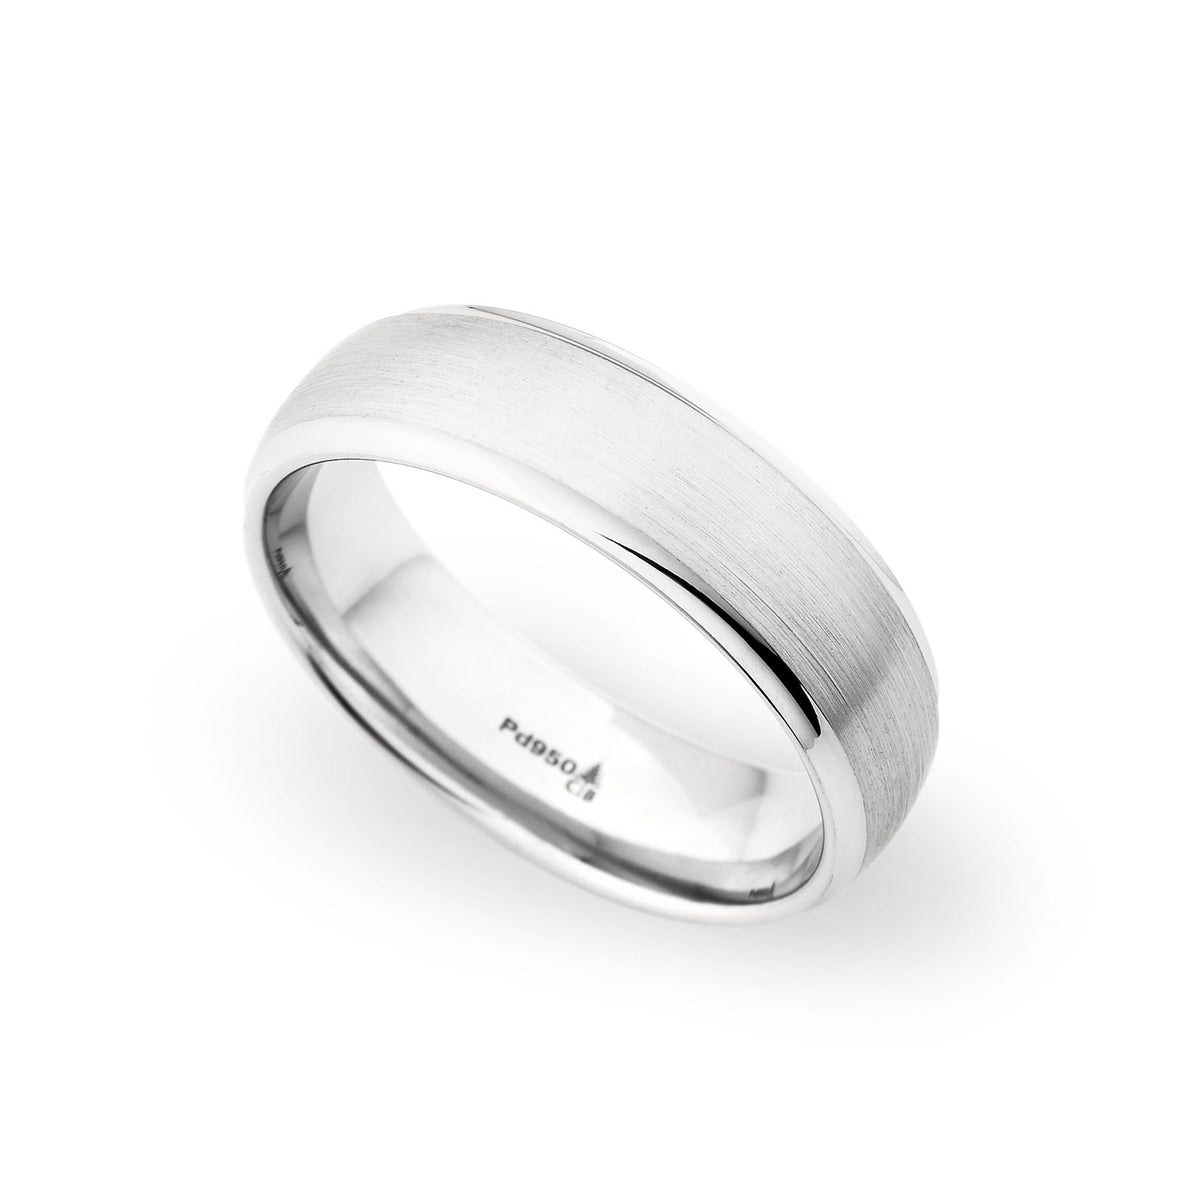 Palladium 6.5mm Brushed Raised Center Band